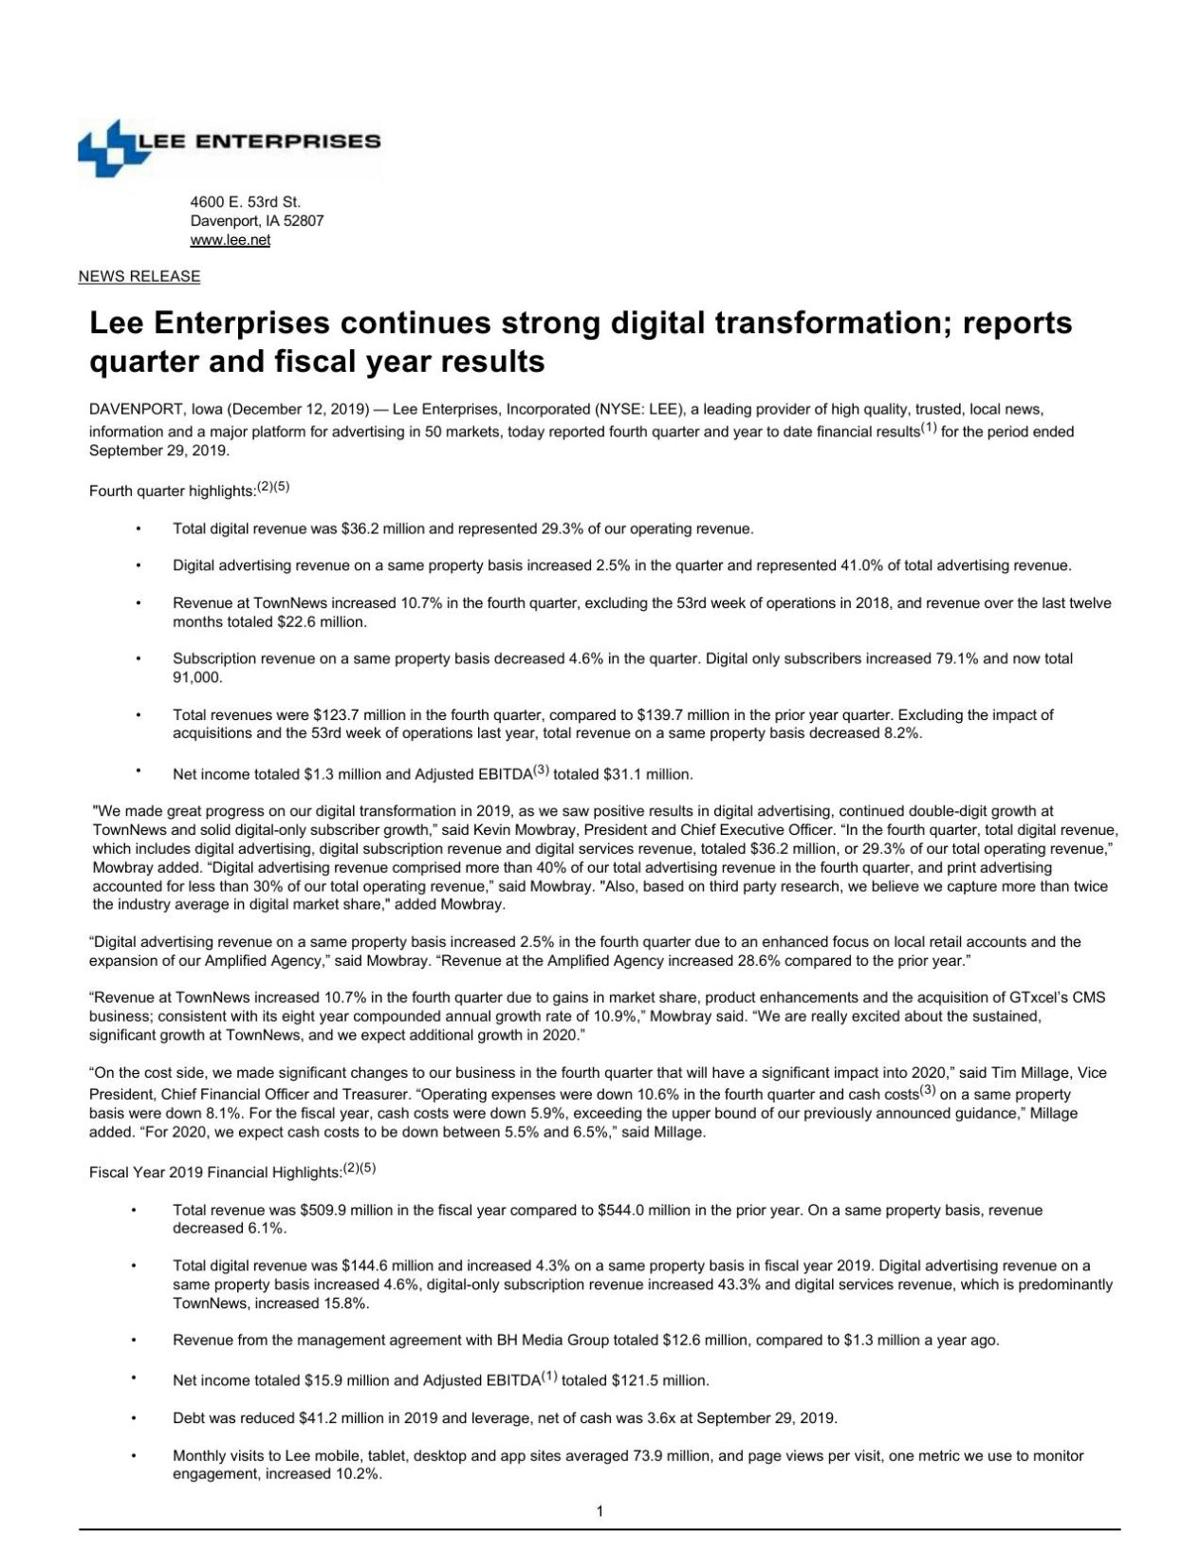 Lee Enterprises continues strong digital transformation; reports quarter and fiscal year results